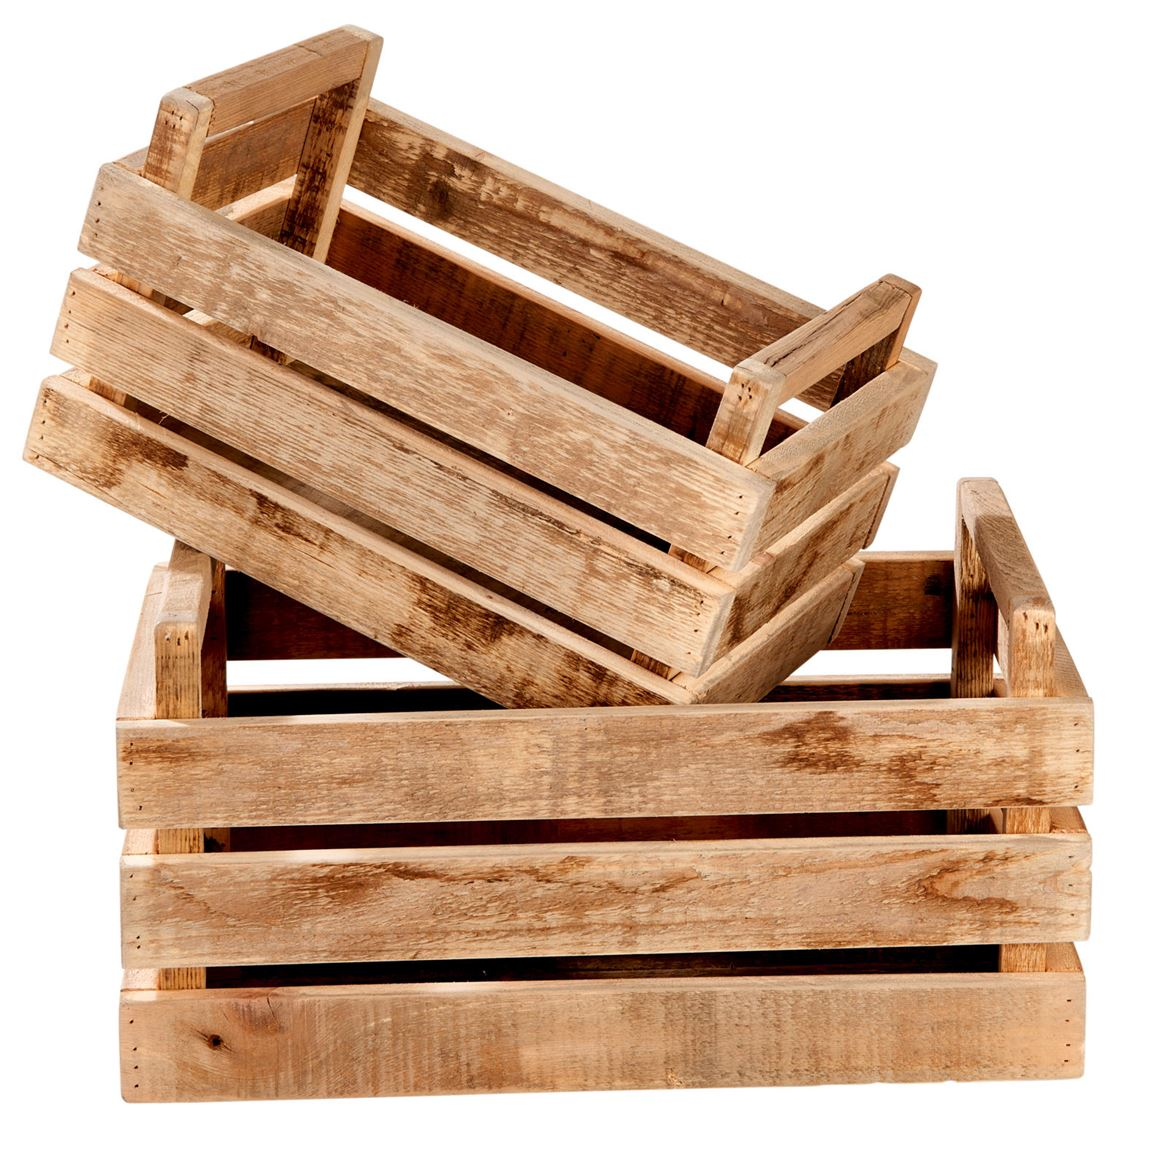 RECYCLE Caisse naturel H 18 x Larg. 44,5 x P 27,5 cm_recycle-caisse-naturel-h-18-x-larg--44,5-x-p-27,5-cm